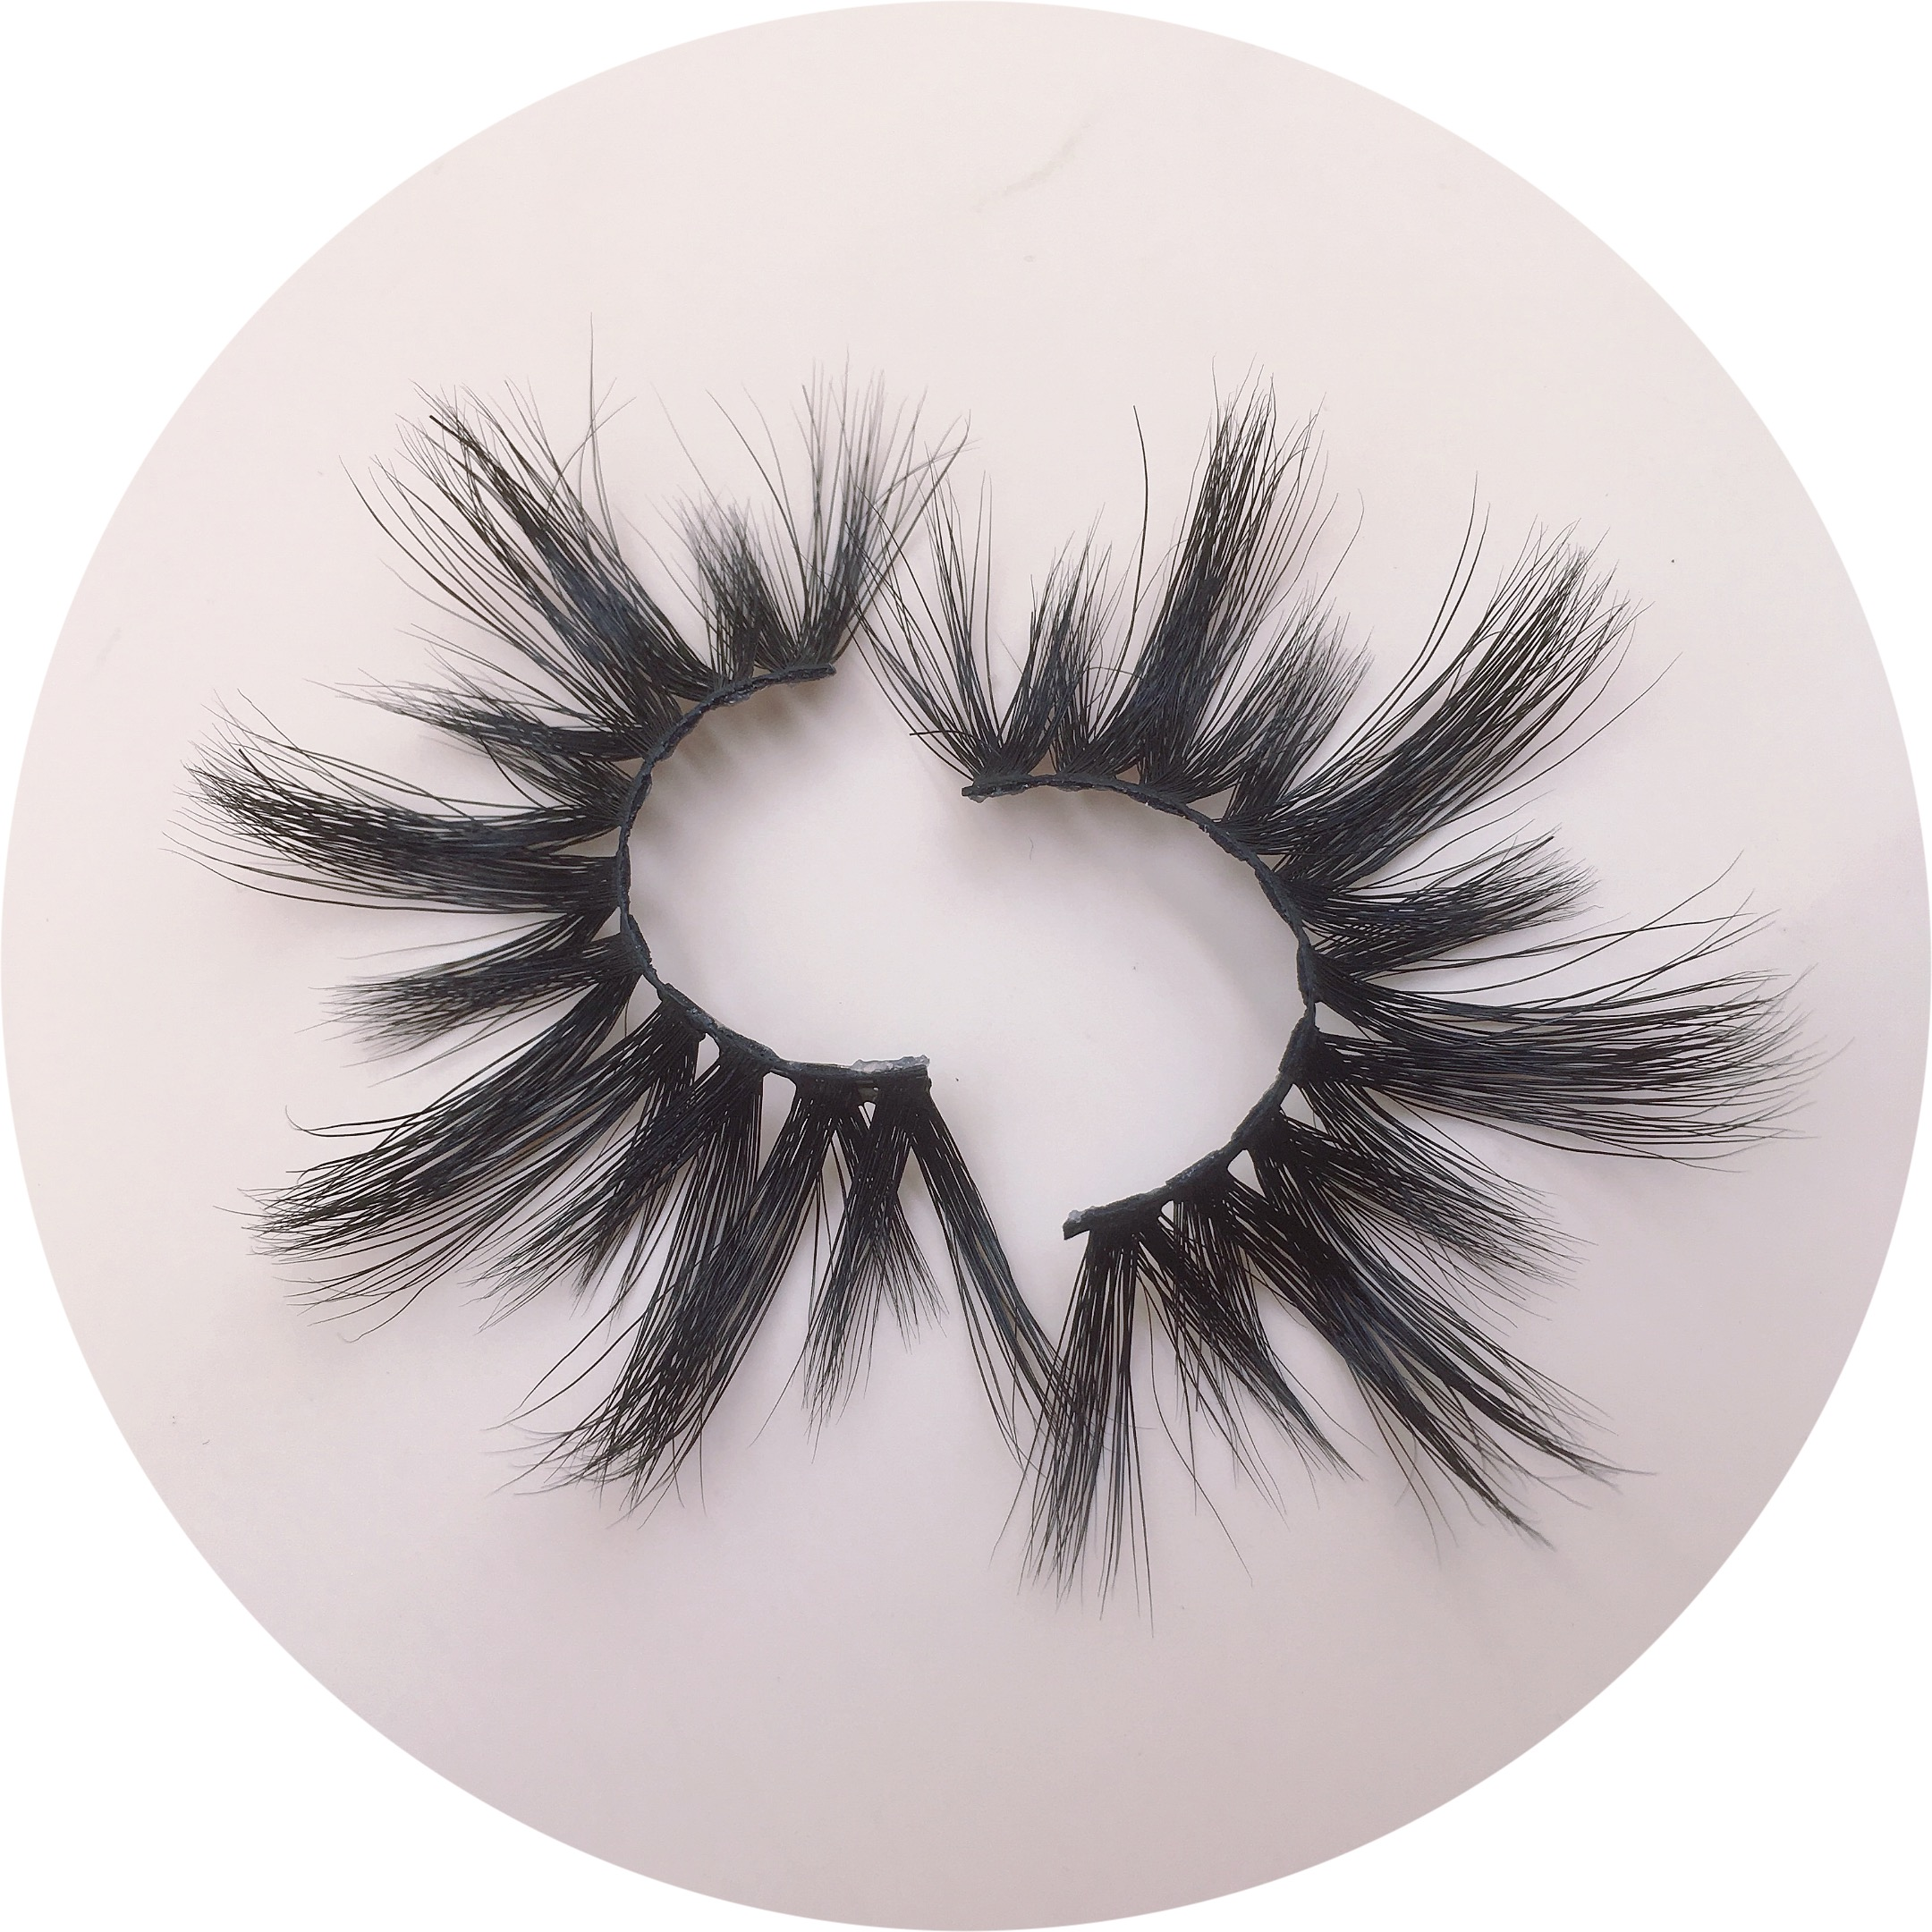 CC curl 6-18mm mink individual lash extensions with ...